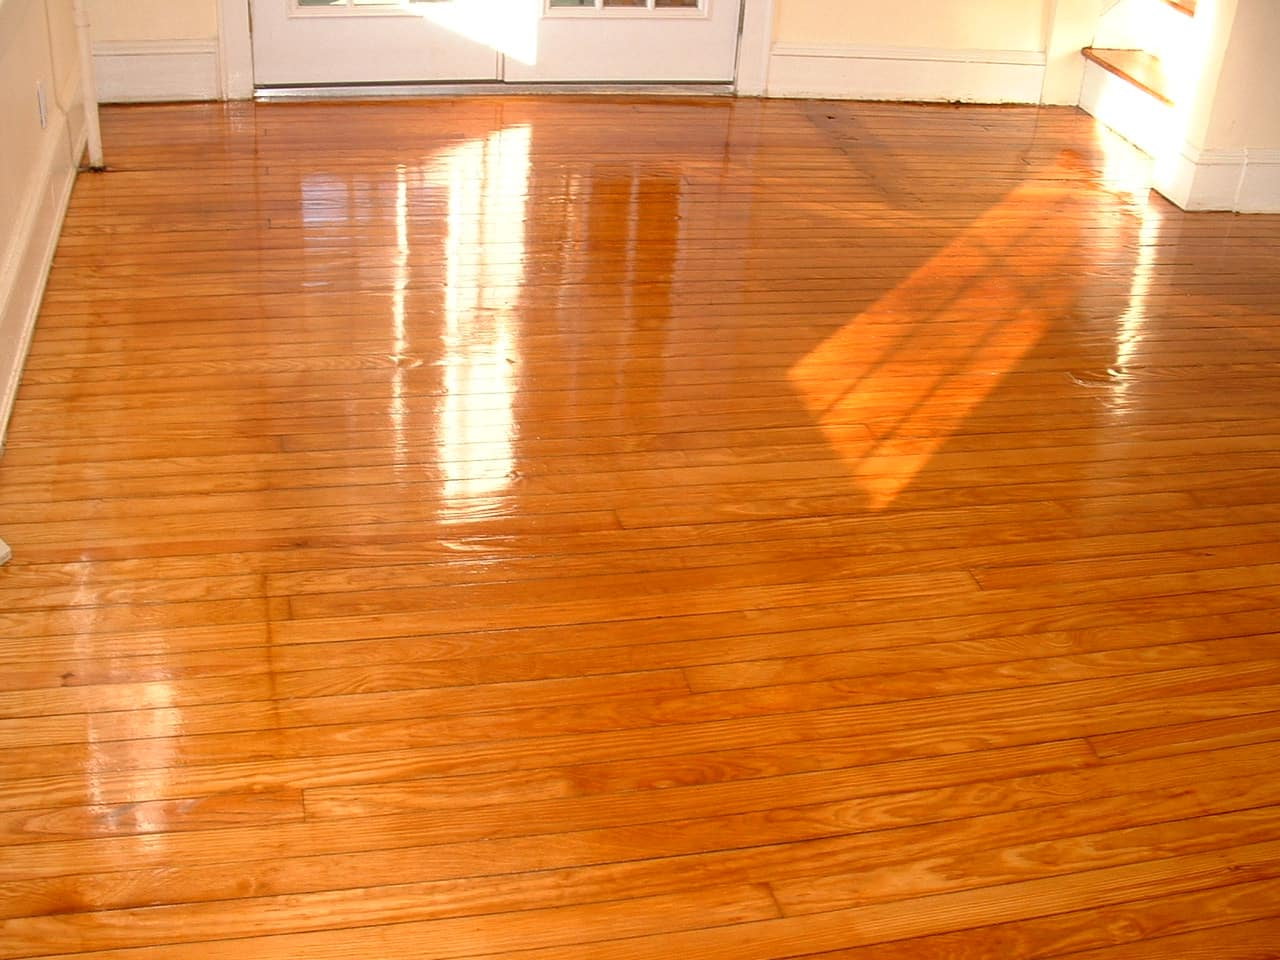 Refinish hardwood floors cost refinish hardwood floors nj for Where to get hardwood floors